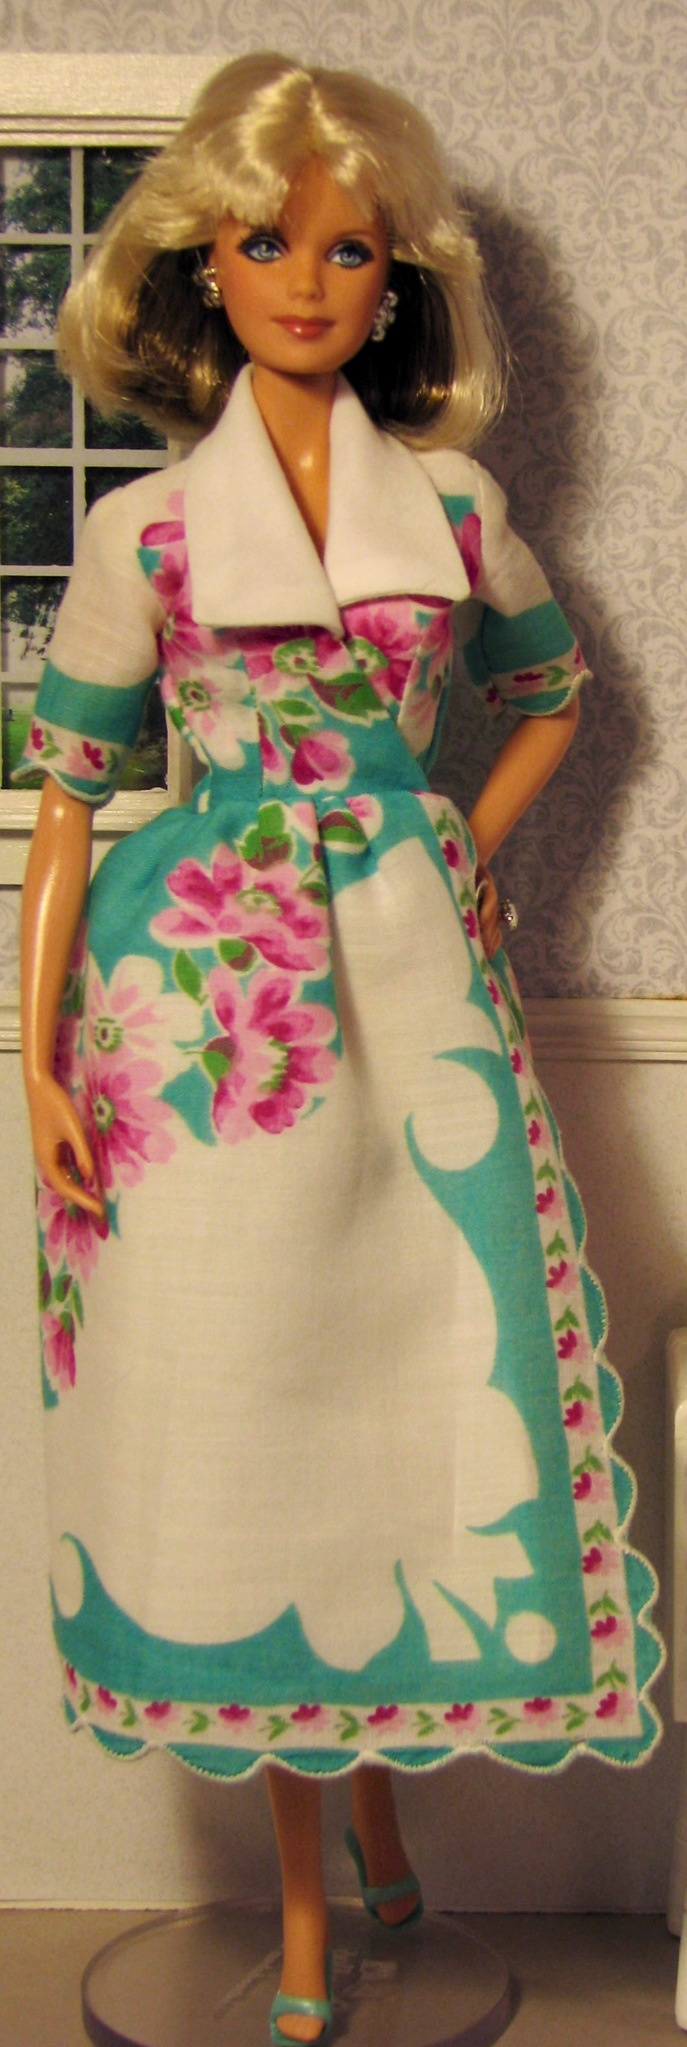 Wrap Barbie dress made from vintage hankie